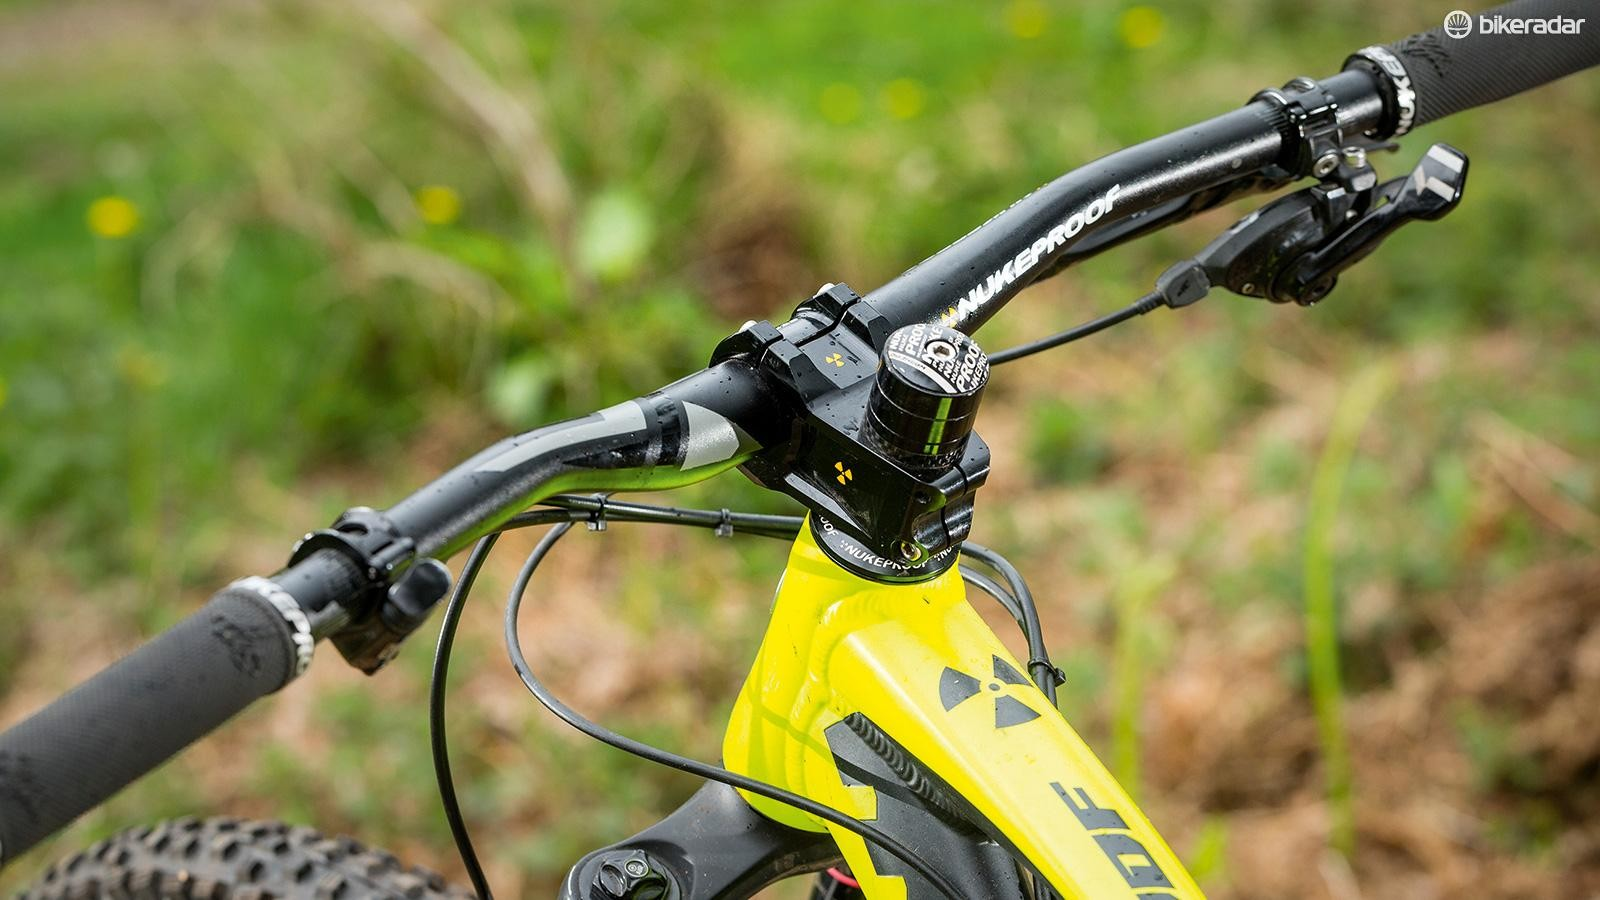 The stiff 50mm Warhead stem and 760mm bar add control – though you could go even wider